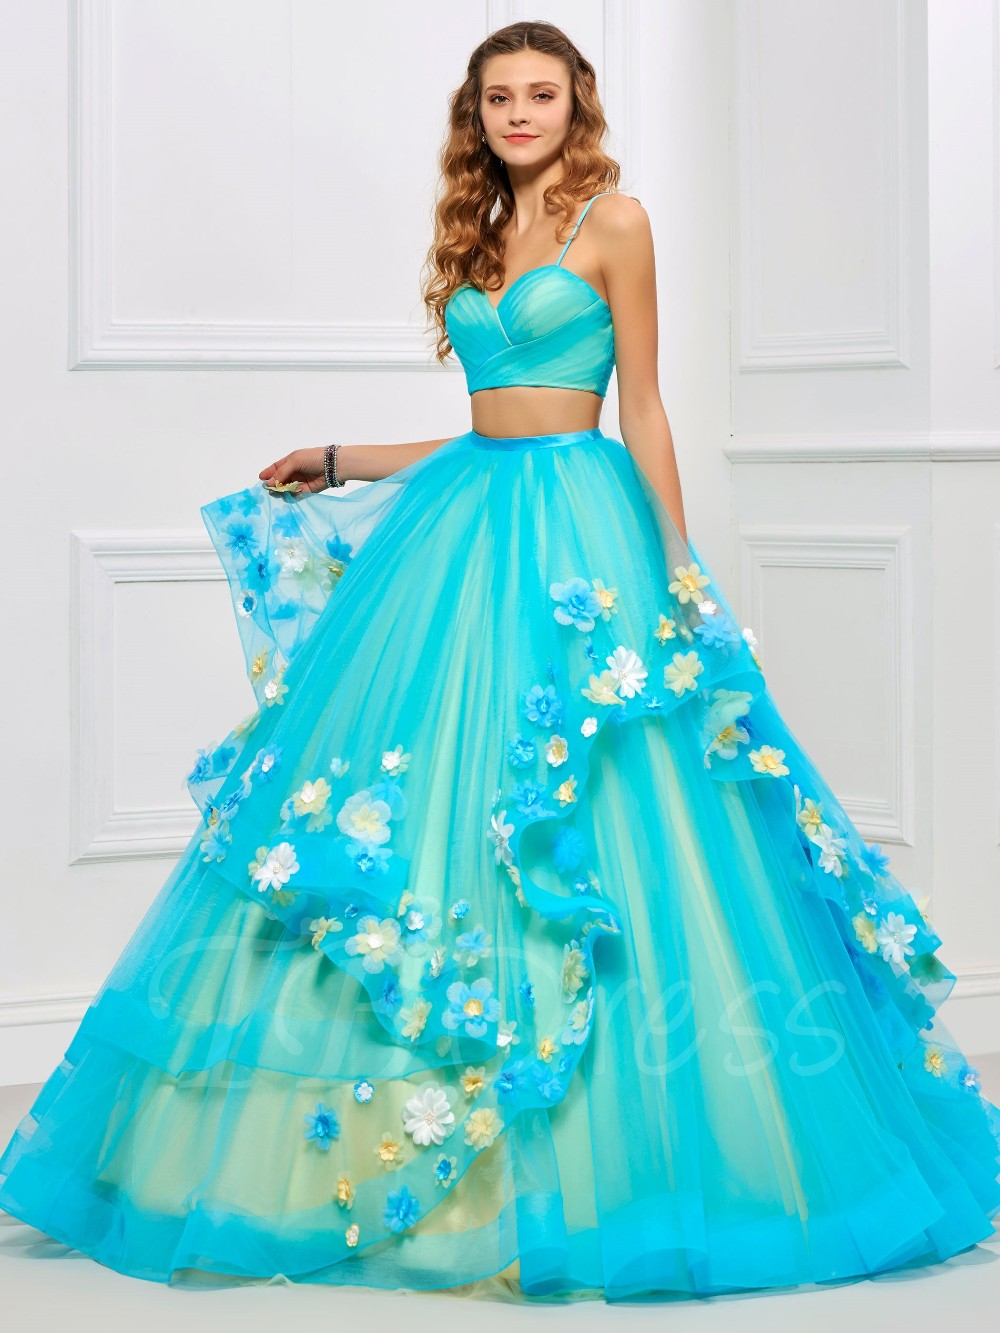 cfcd3ef4d30 Quinceanera Dresses Blue And Yellow - Gomes Weine AG